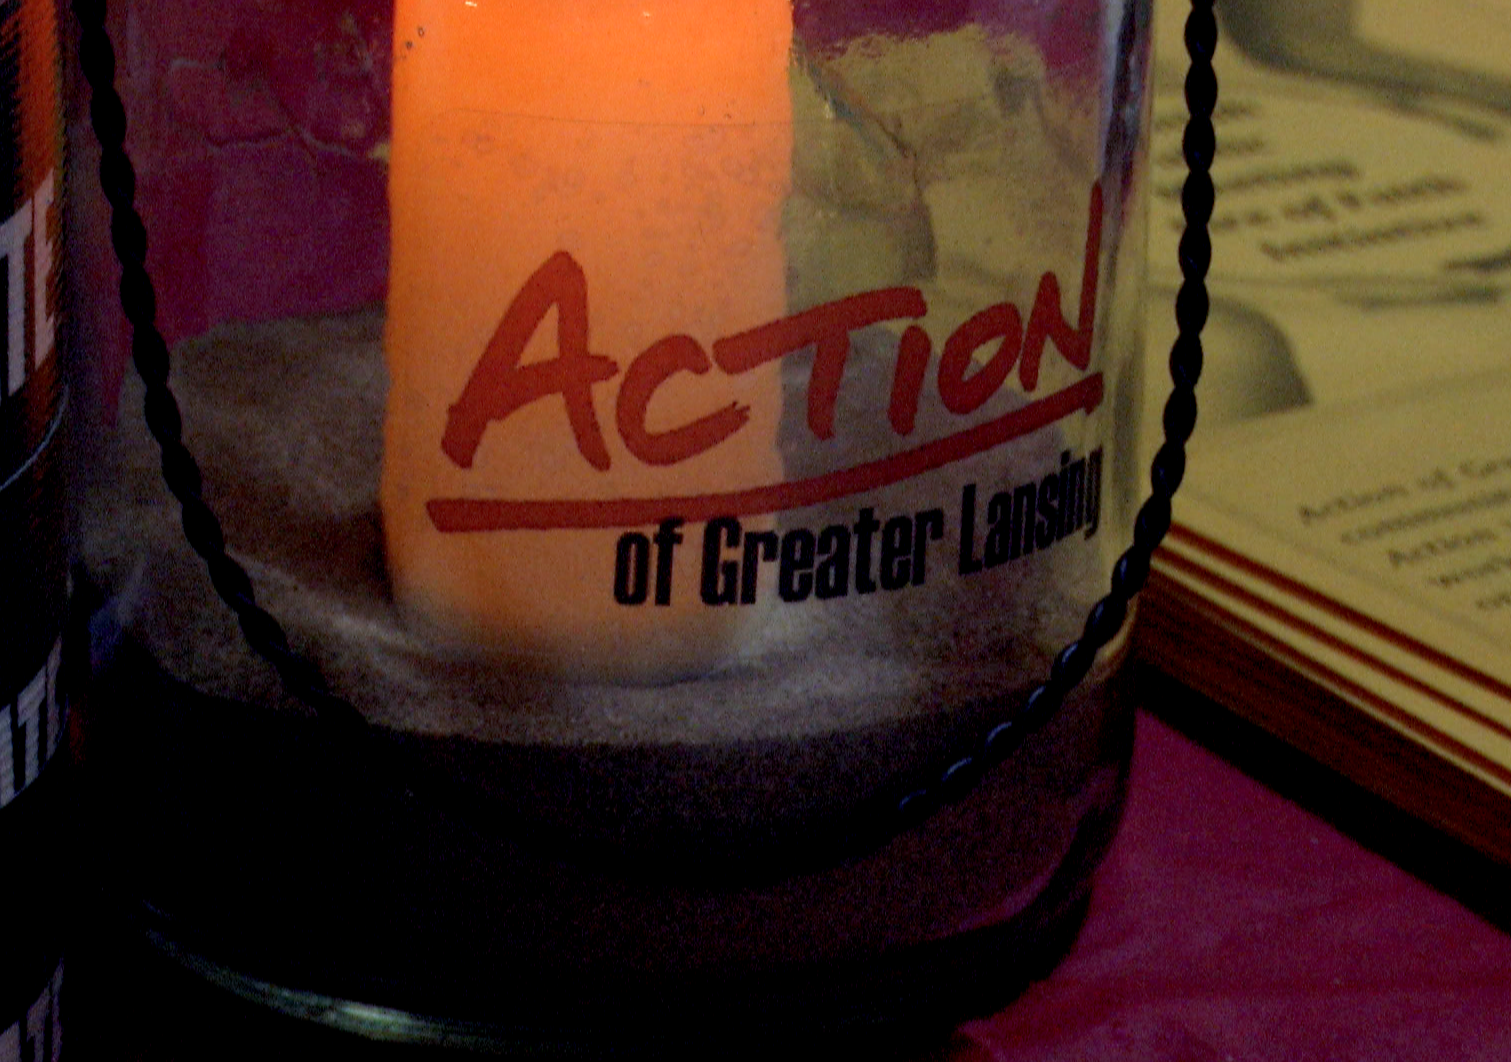 Action of Greater Lansing Discusses 